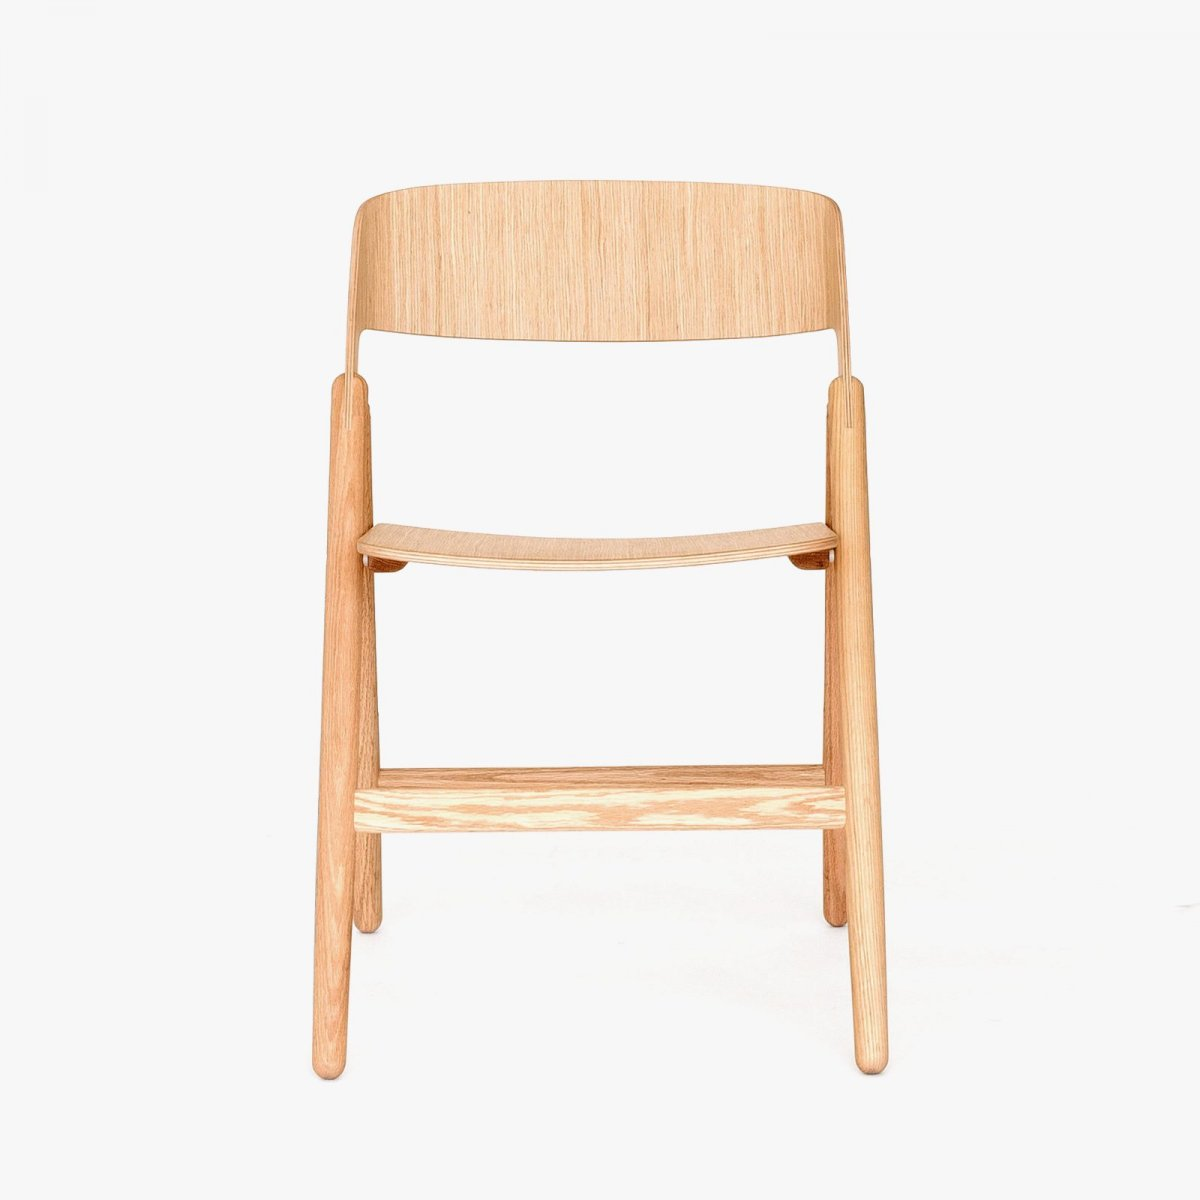 Narin Folding Chair, oak, front view.